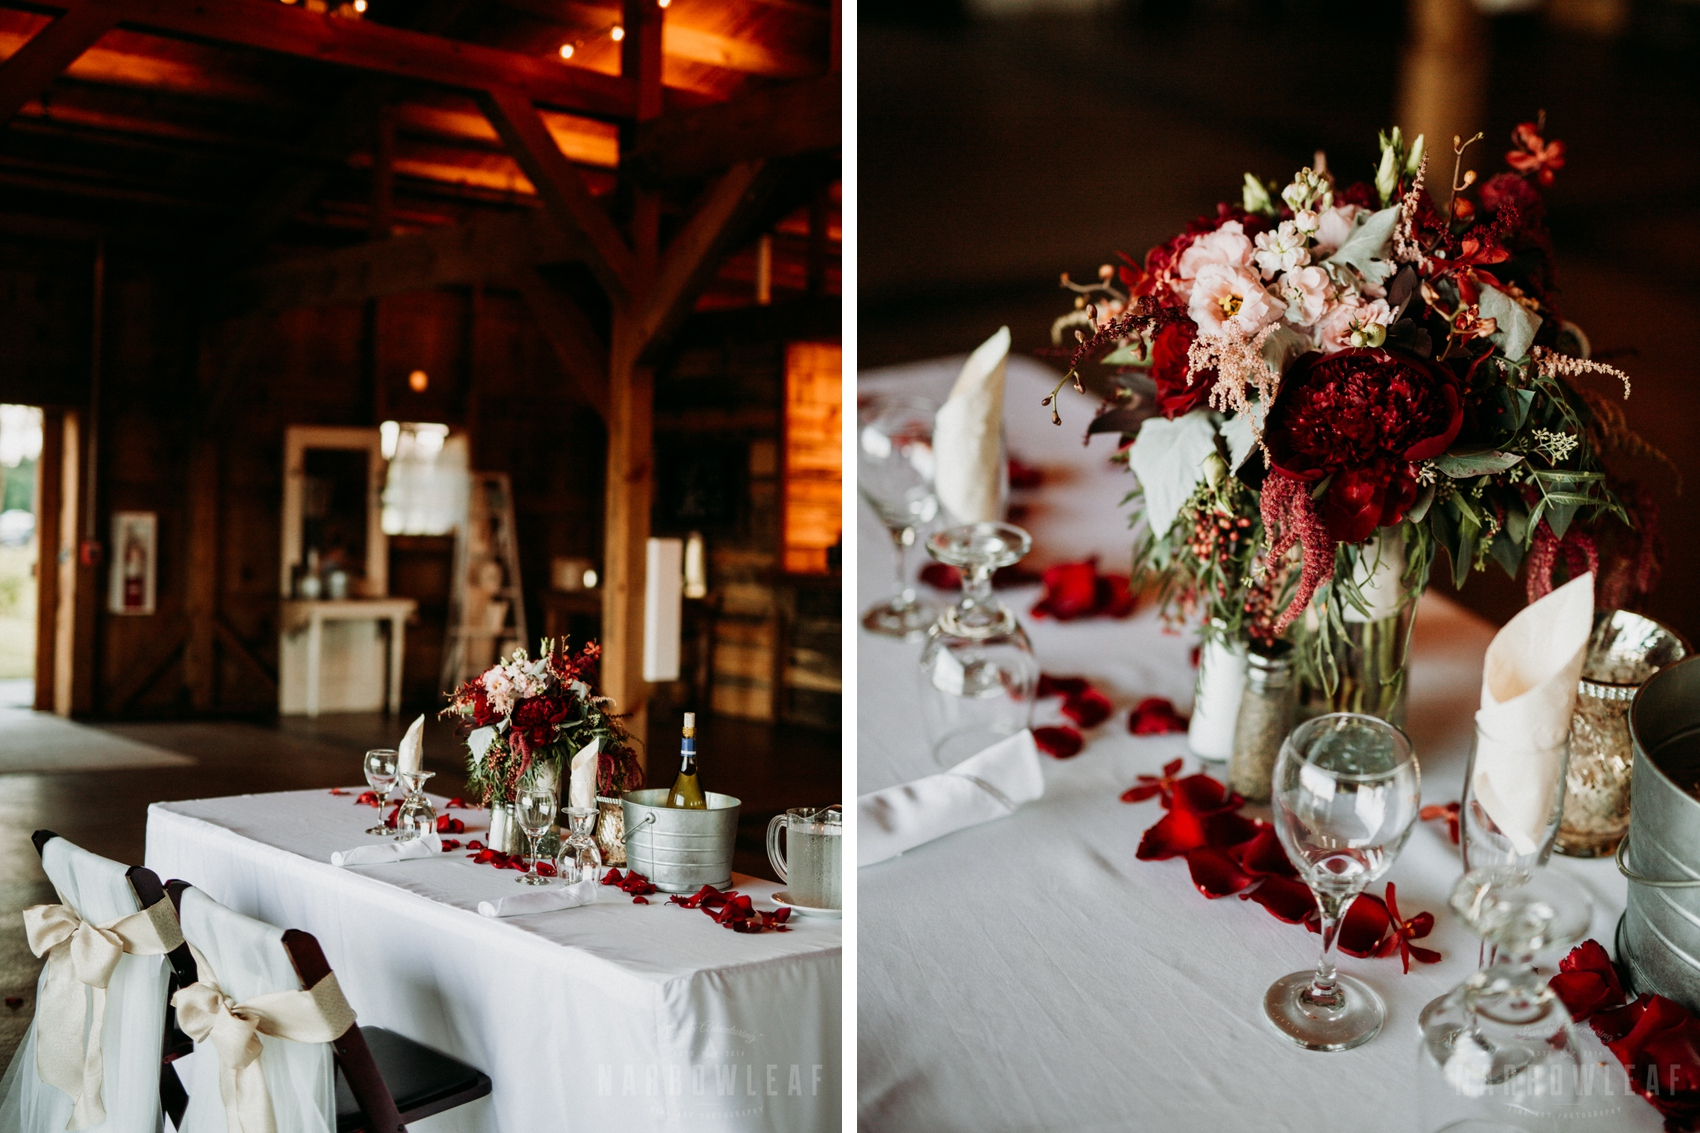 rustic-chic-wedding-reception-details-at-rustys-hitchin-post-new-richmond-wi023-024.jpg